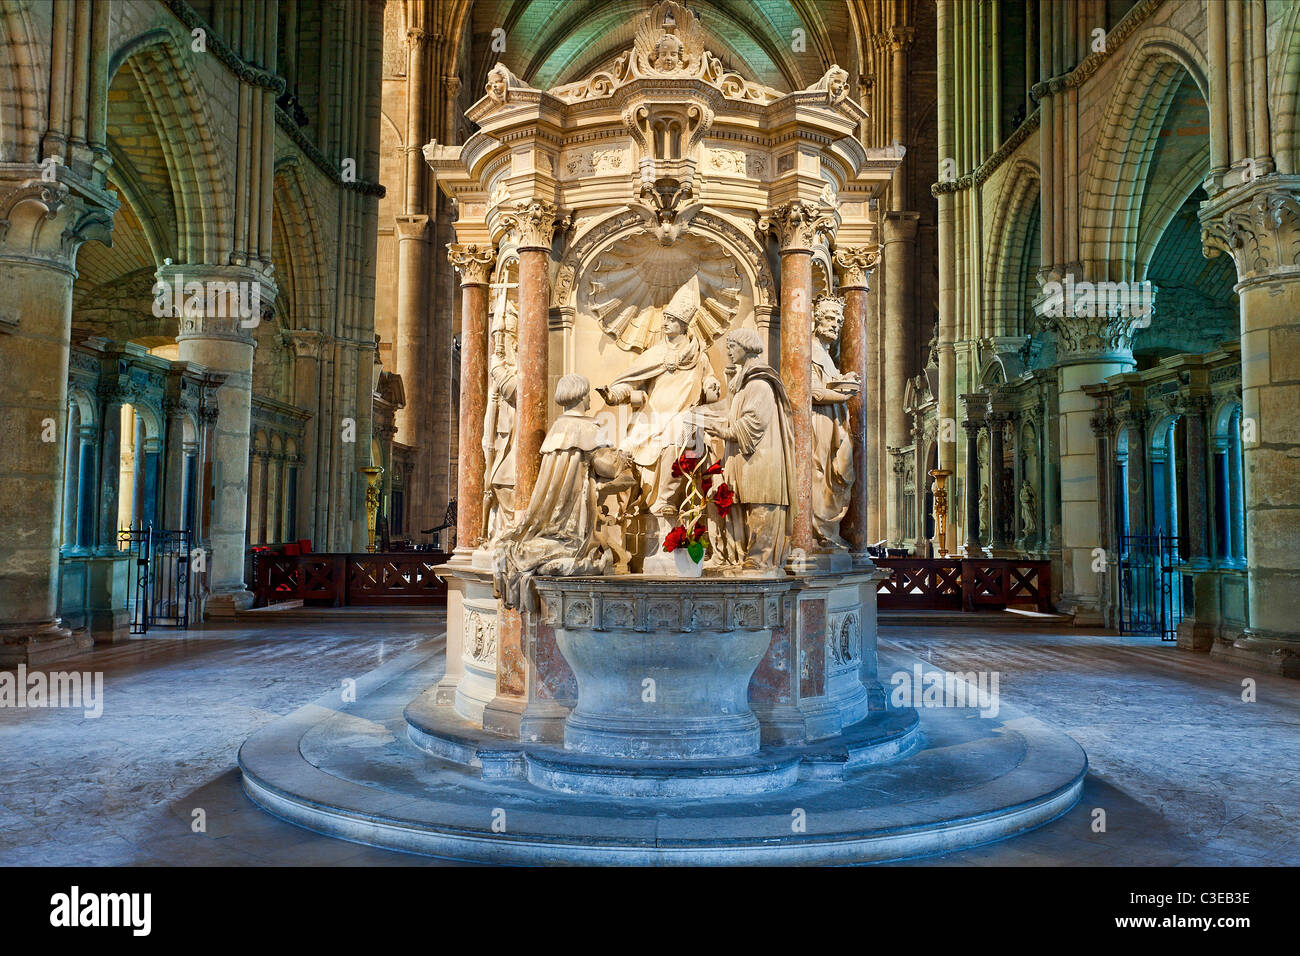 Reims, Saint remi Basilica, listed as World Heritage by UNESCO - Stock Image